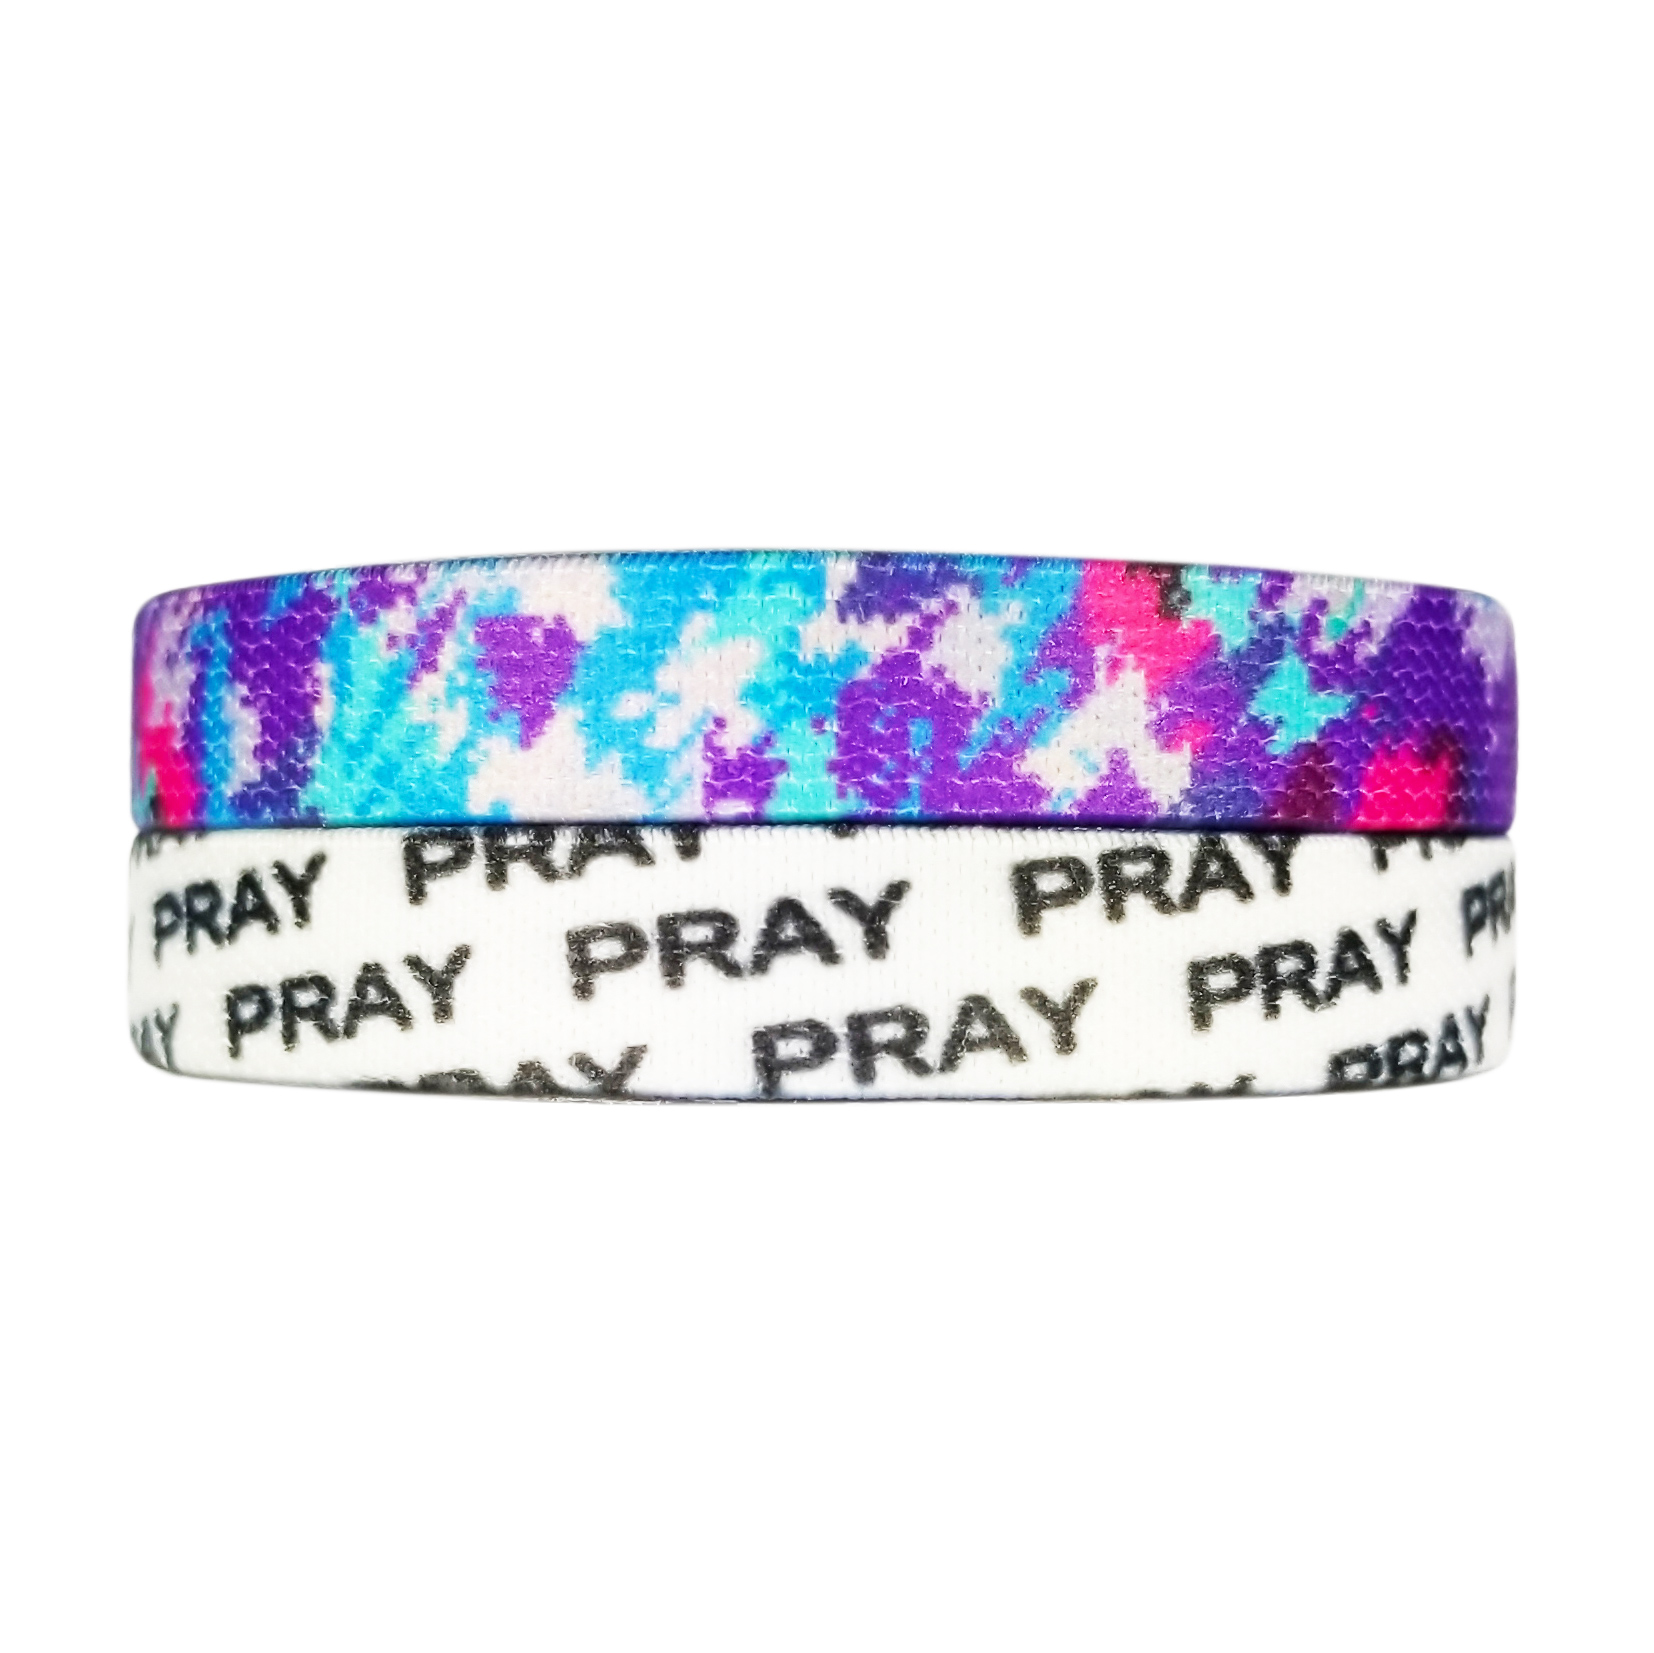 bracelet silicone band dp com black wristband white affirmation religious wrist blessed letters clothing amazon